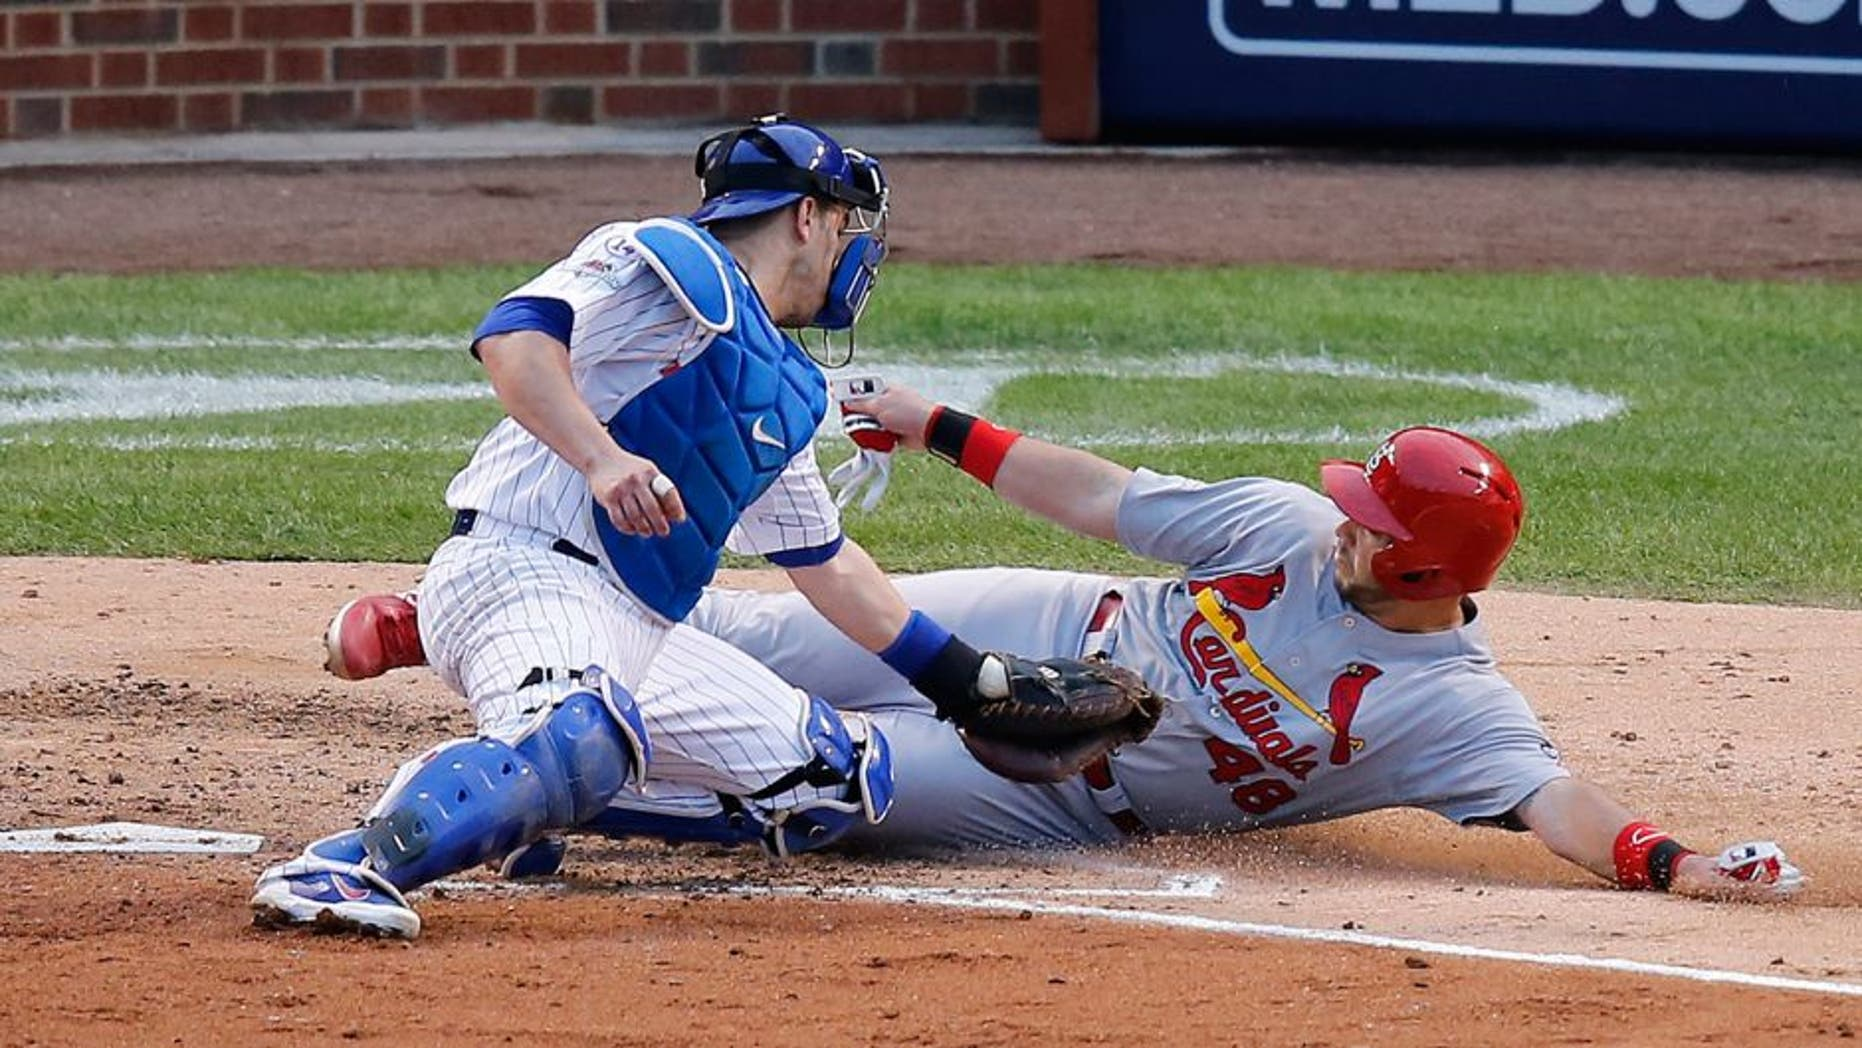 Chicago Cubs catcher Miguel Montero (47) tags out St. Louis Cardinals' Tony Cruz (48) during the sixth inning of Game 4 in baseball's National League Division Series, Tuesday, Oct. 13, 2015, in Chicago. (AP Photo/Charles Rex Arbogast)